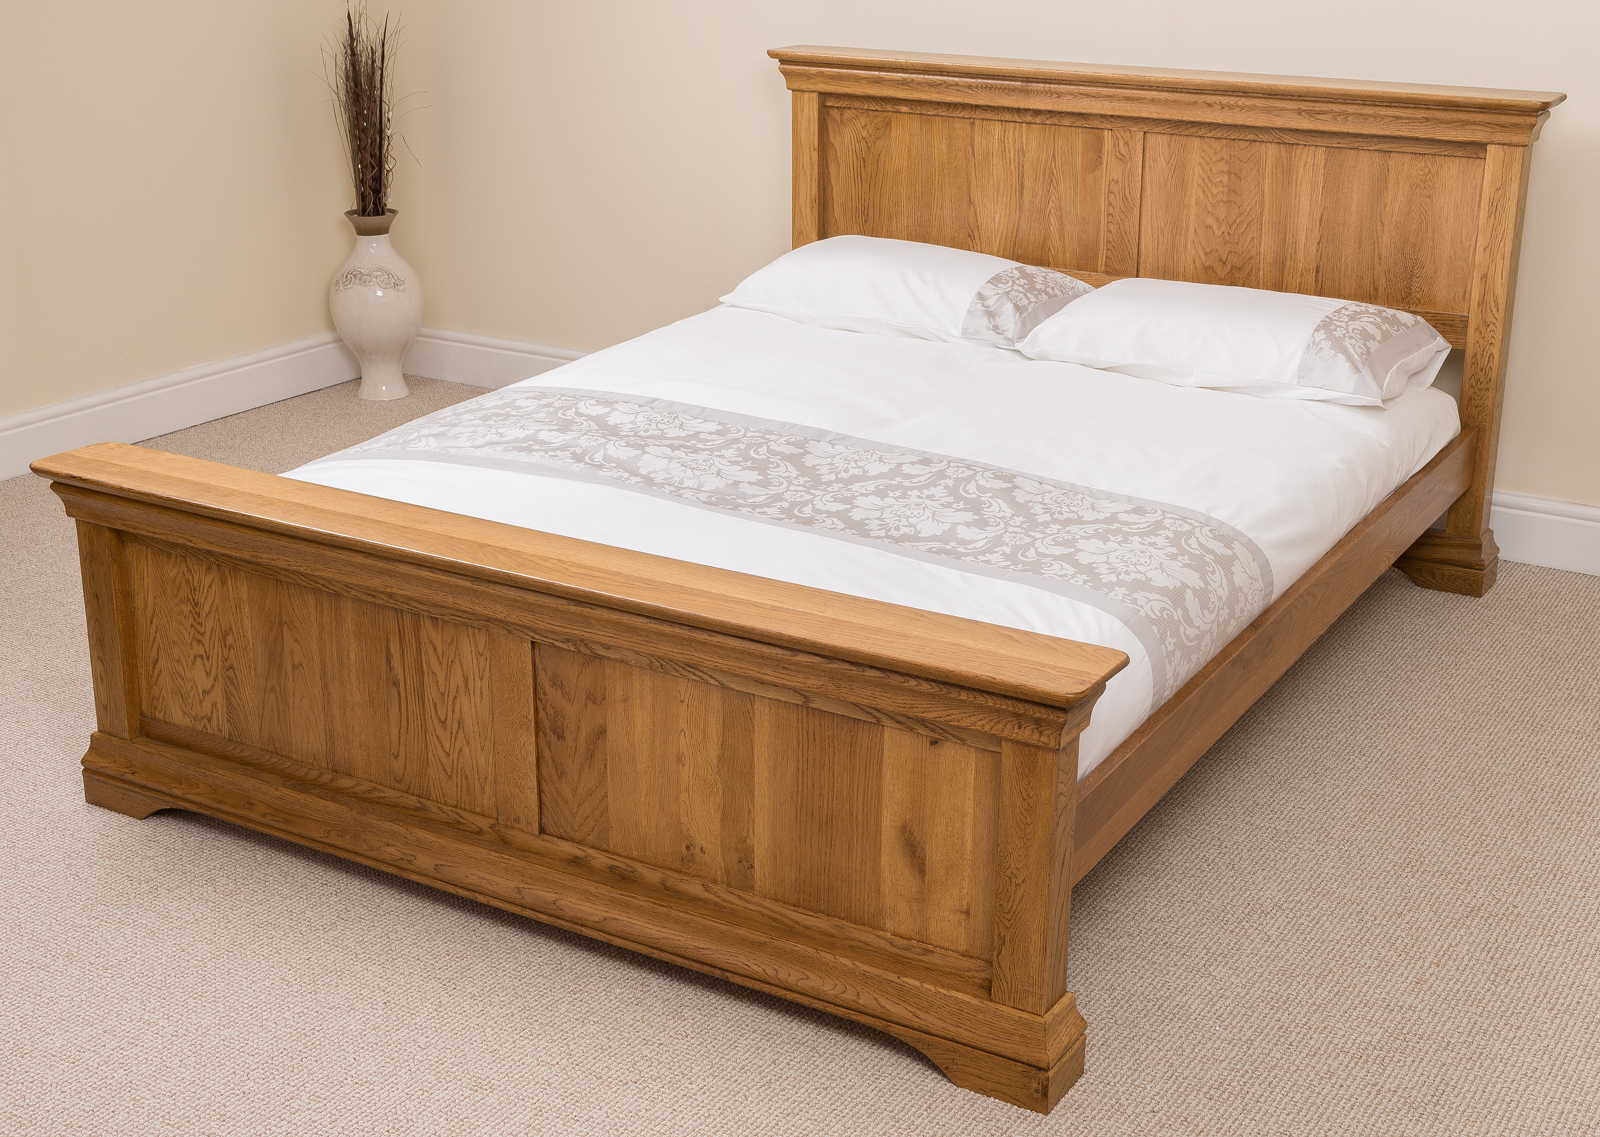 FRENCH RUSTIC SOLID OAK WOOD SUPER KING SIZE BED FRAME ...